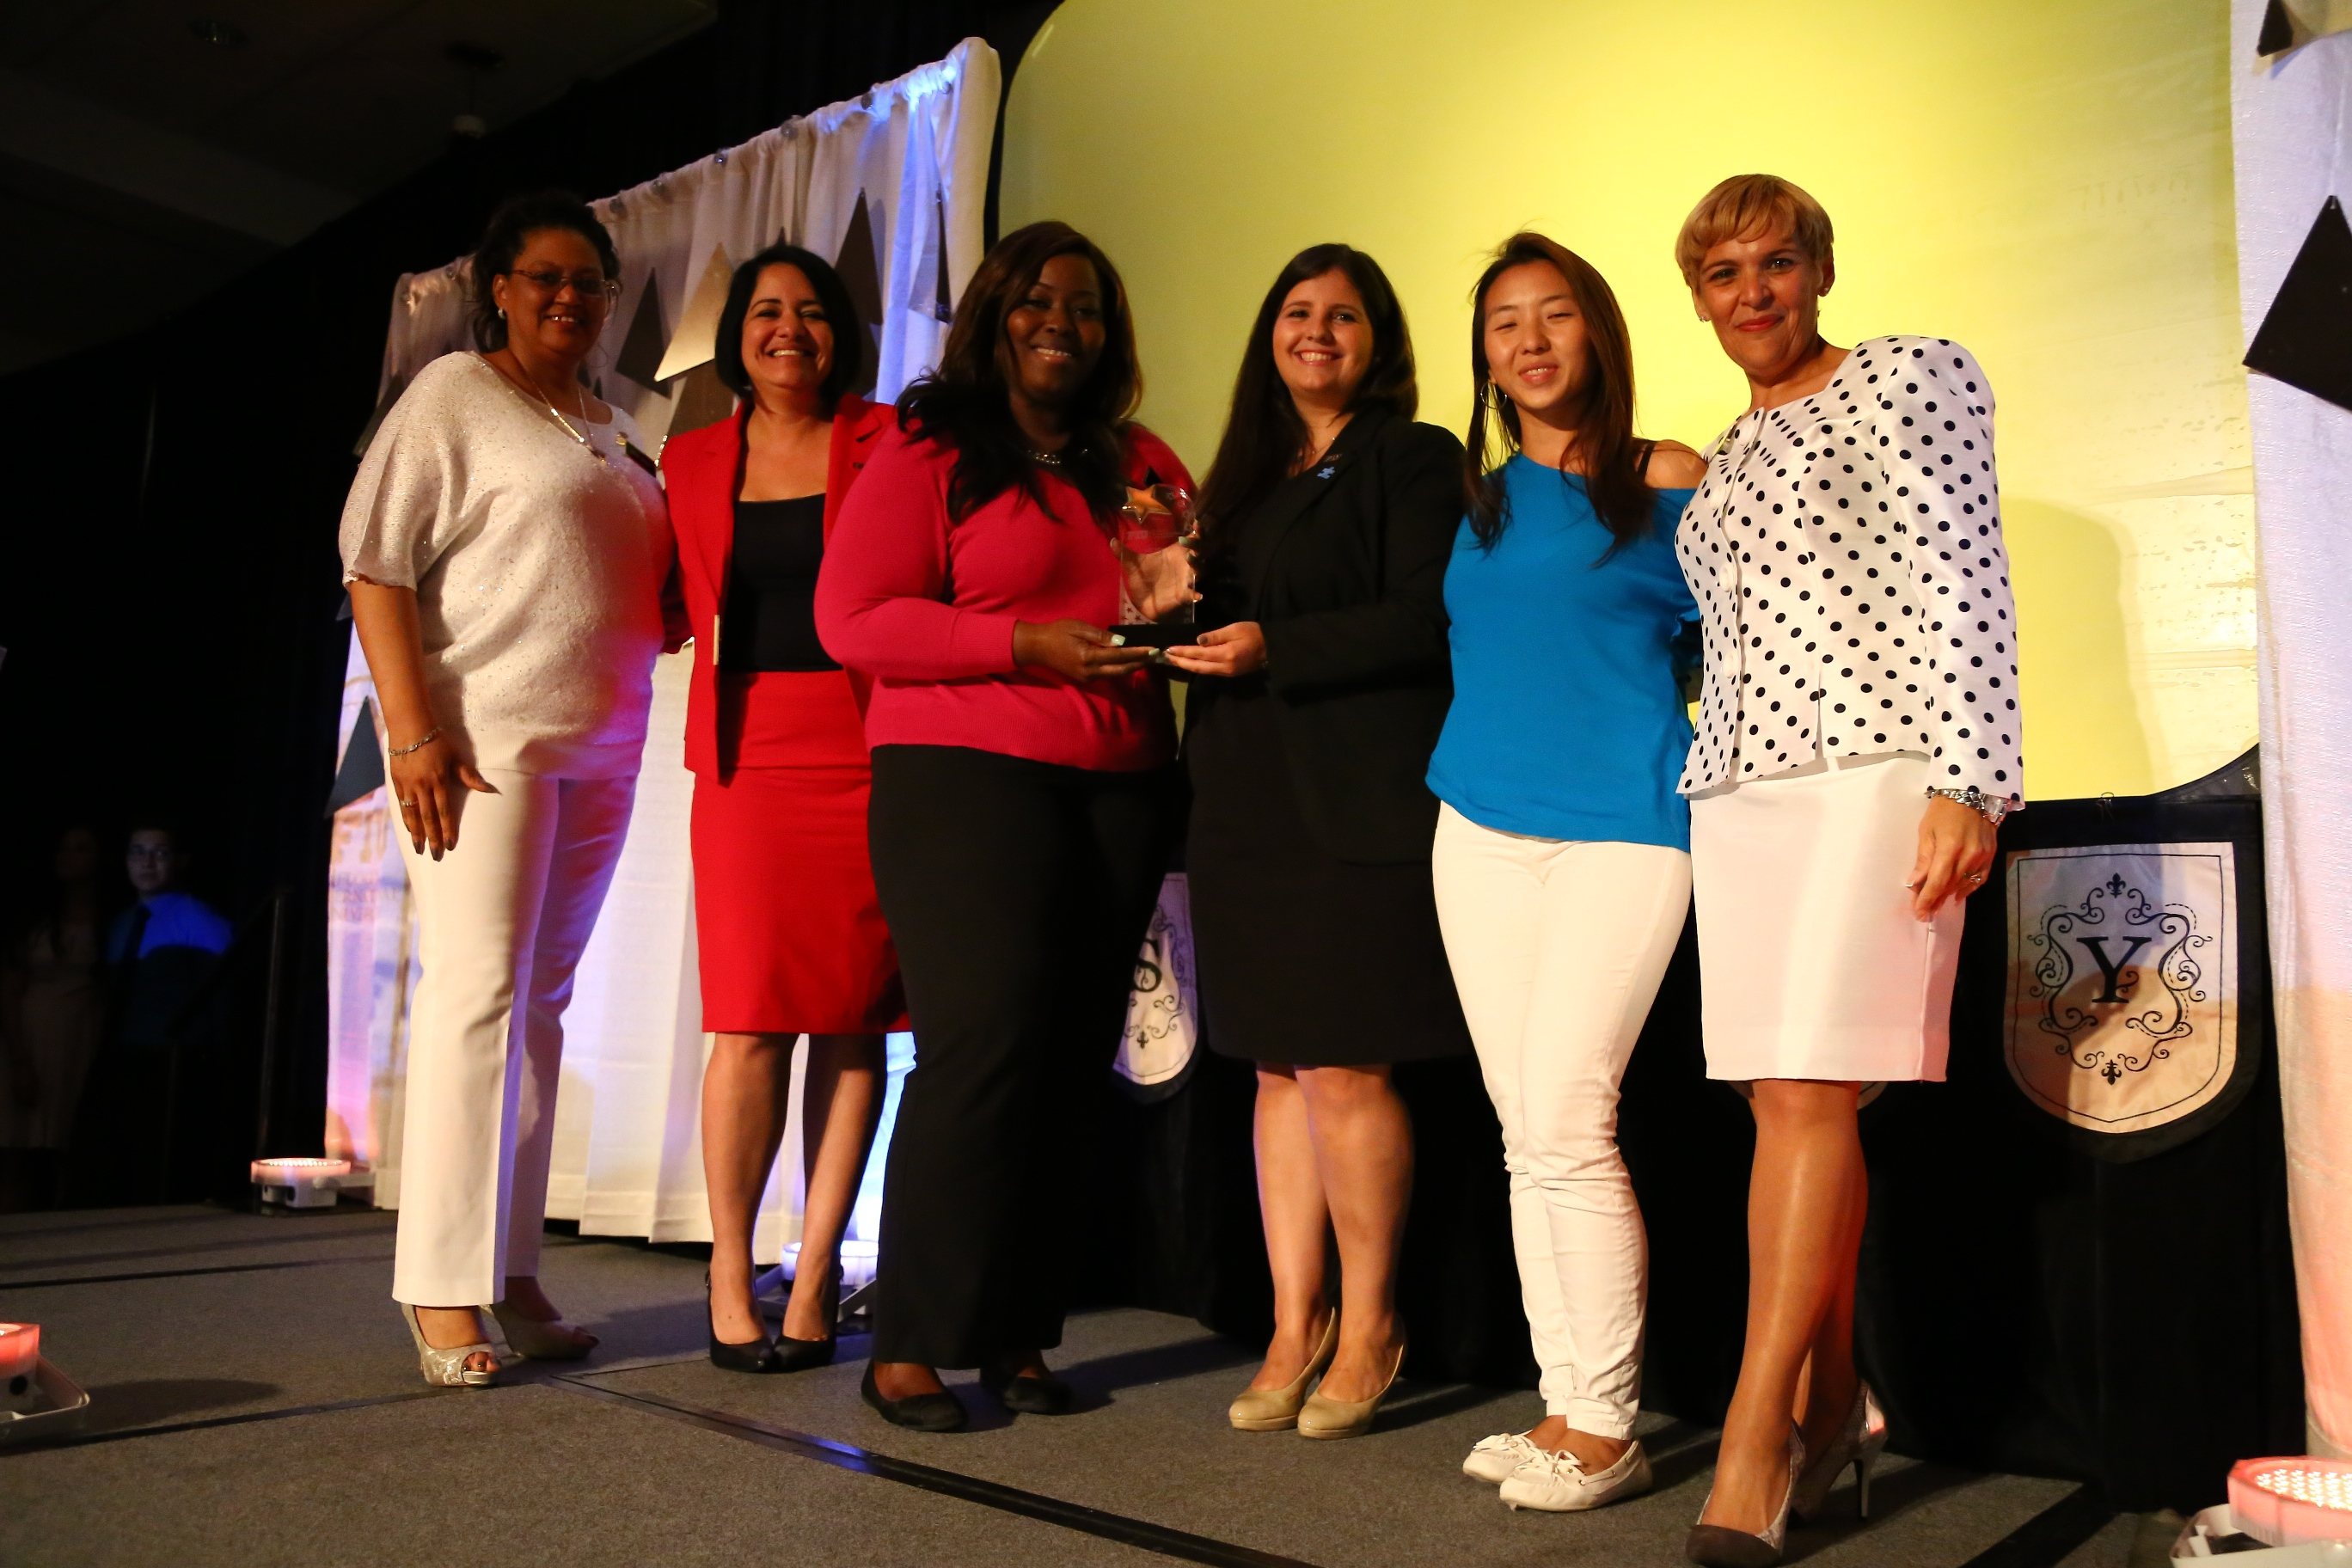 Shantell Rolle receives her SEOTY award. From left to right: Adelfa Ukenye, Luisa Havens, Shantell Rolle, Liane Sippin, Fu Zhou Wu and Ana Jimenez.